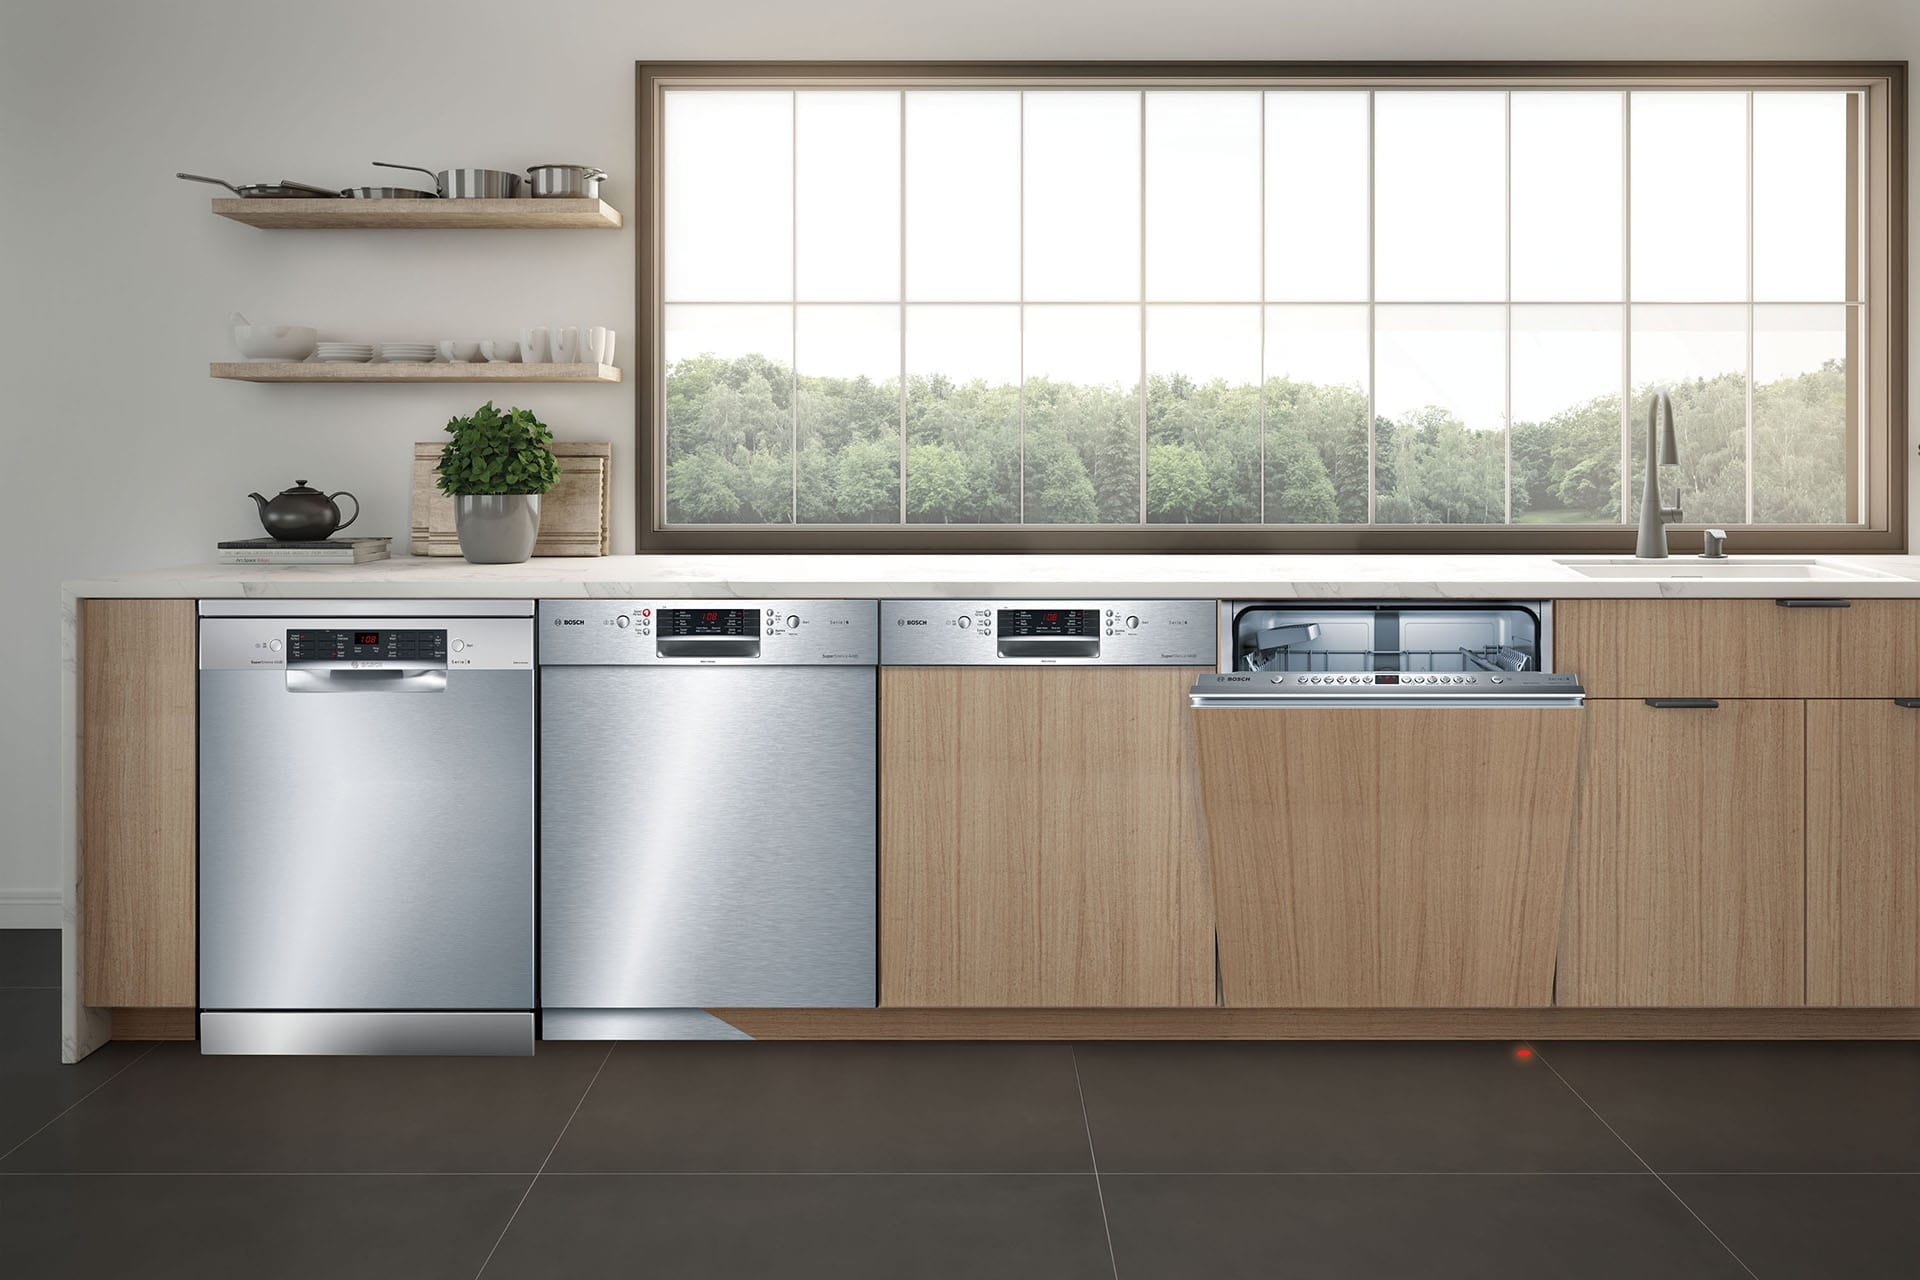 Dishwasher Repair Melbourne